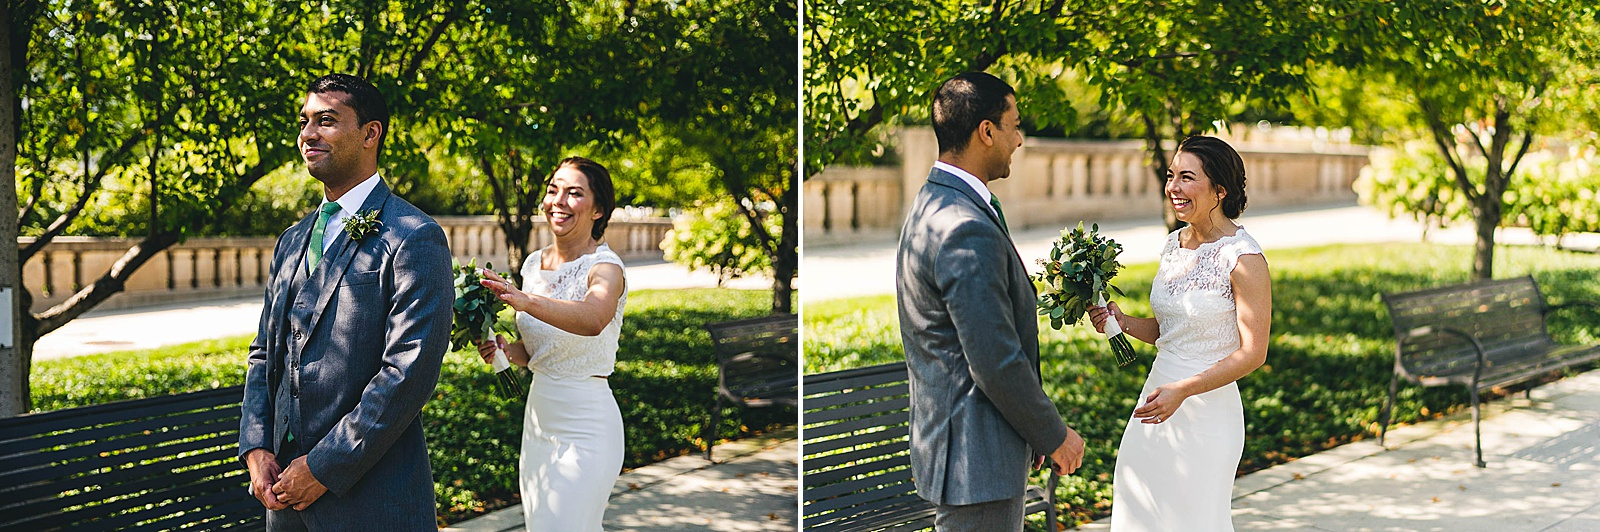 09 best first look - Wedding at Bridgeport Art Center // Kylie + Sean